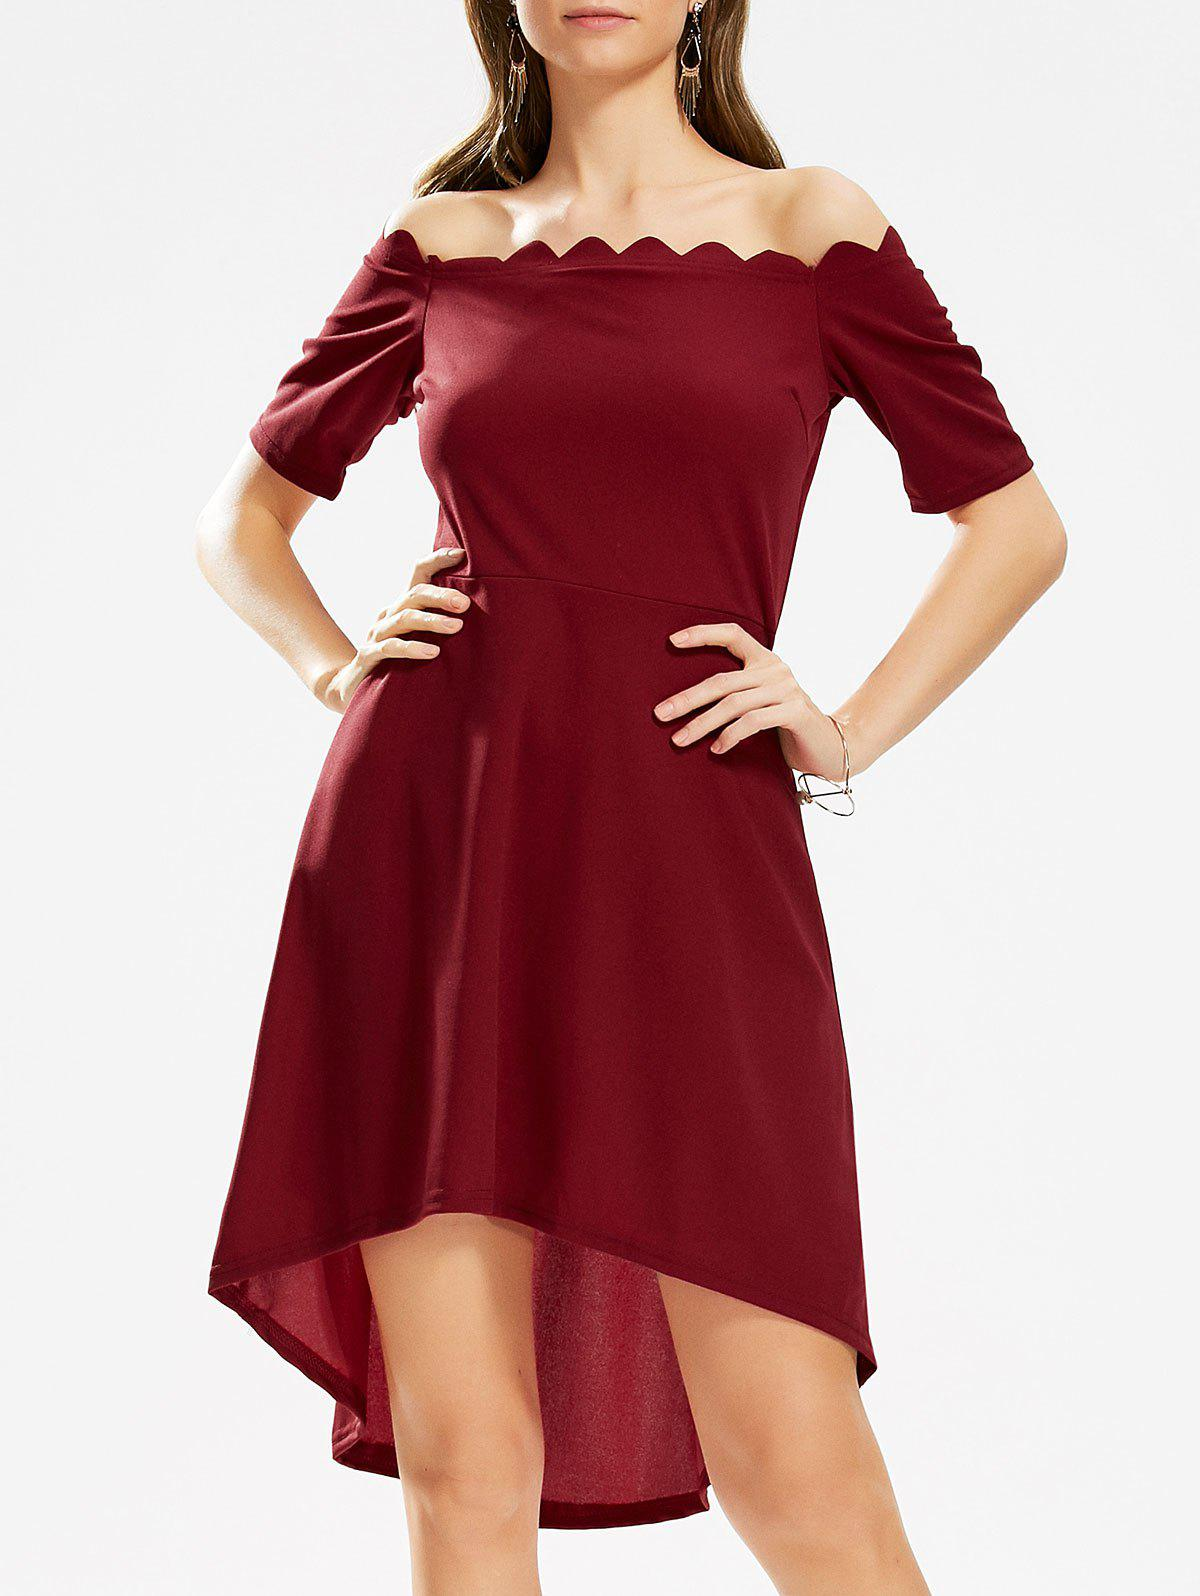 Off The Shoulder Robe à bas prix à bas prix - Rouge vineux S